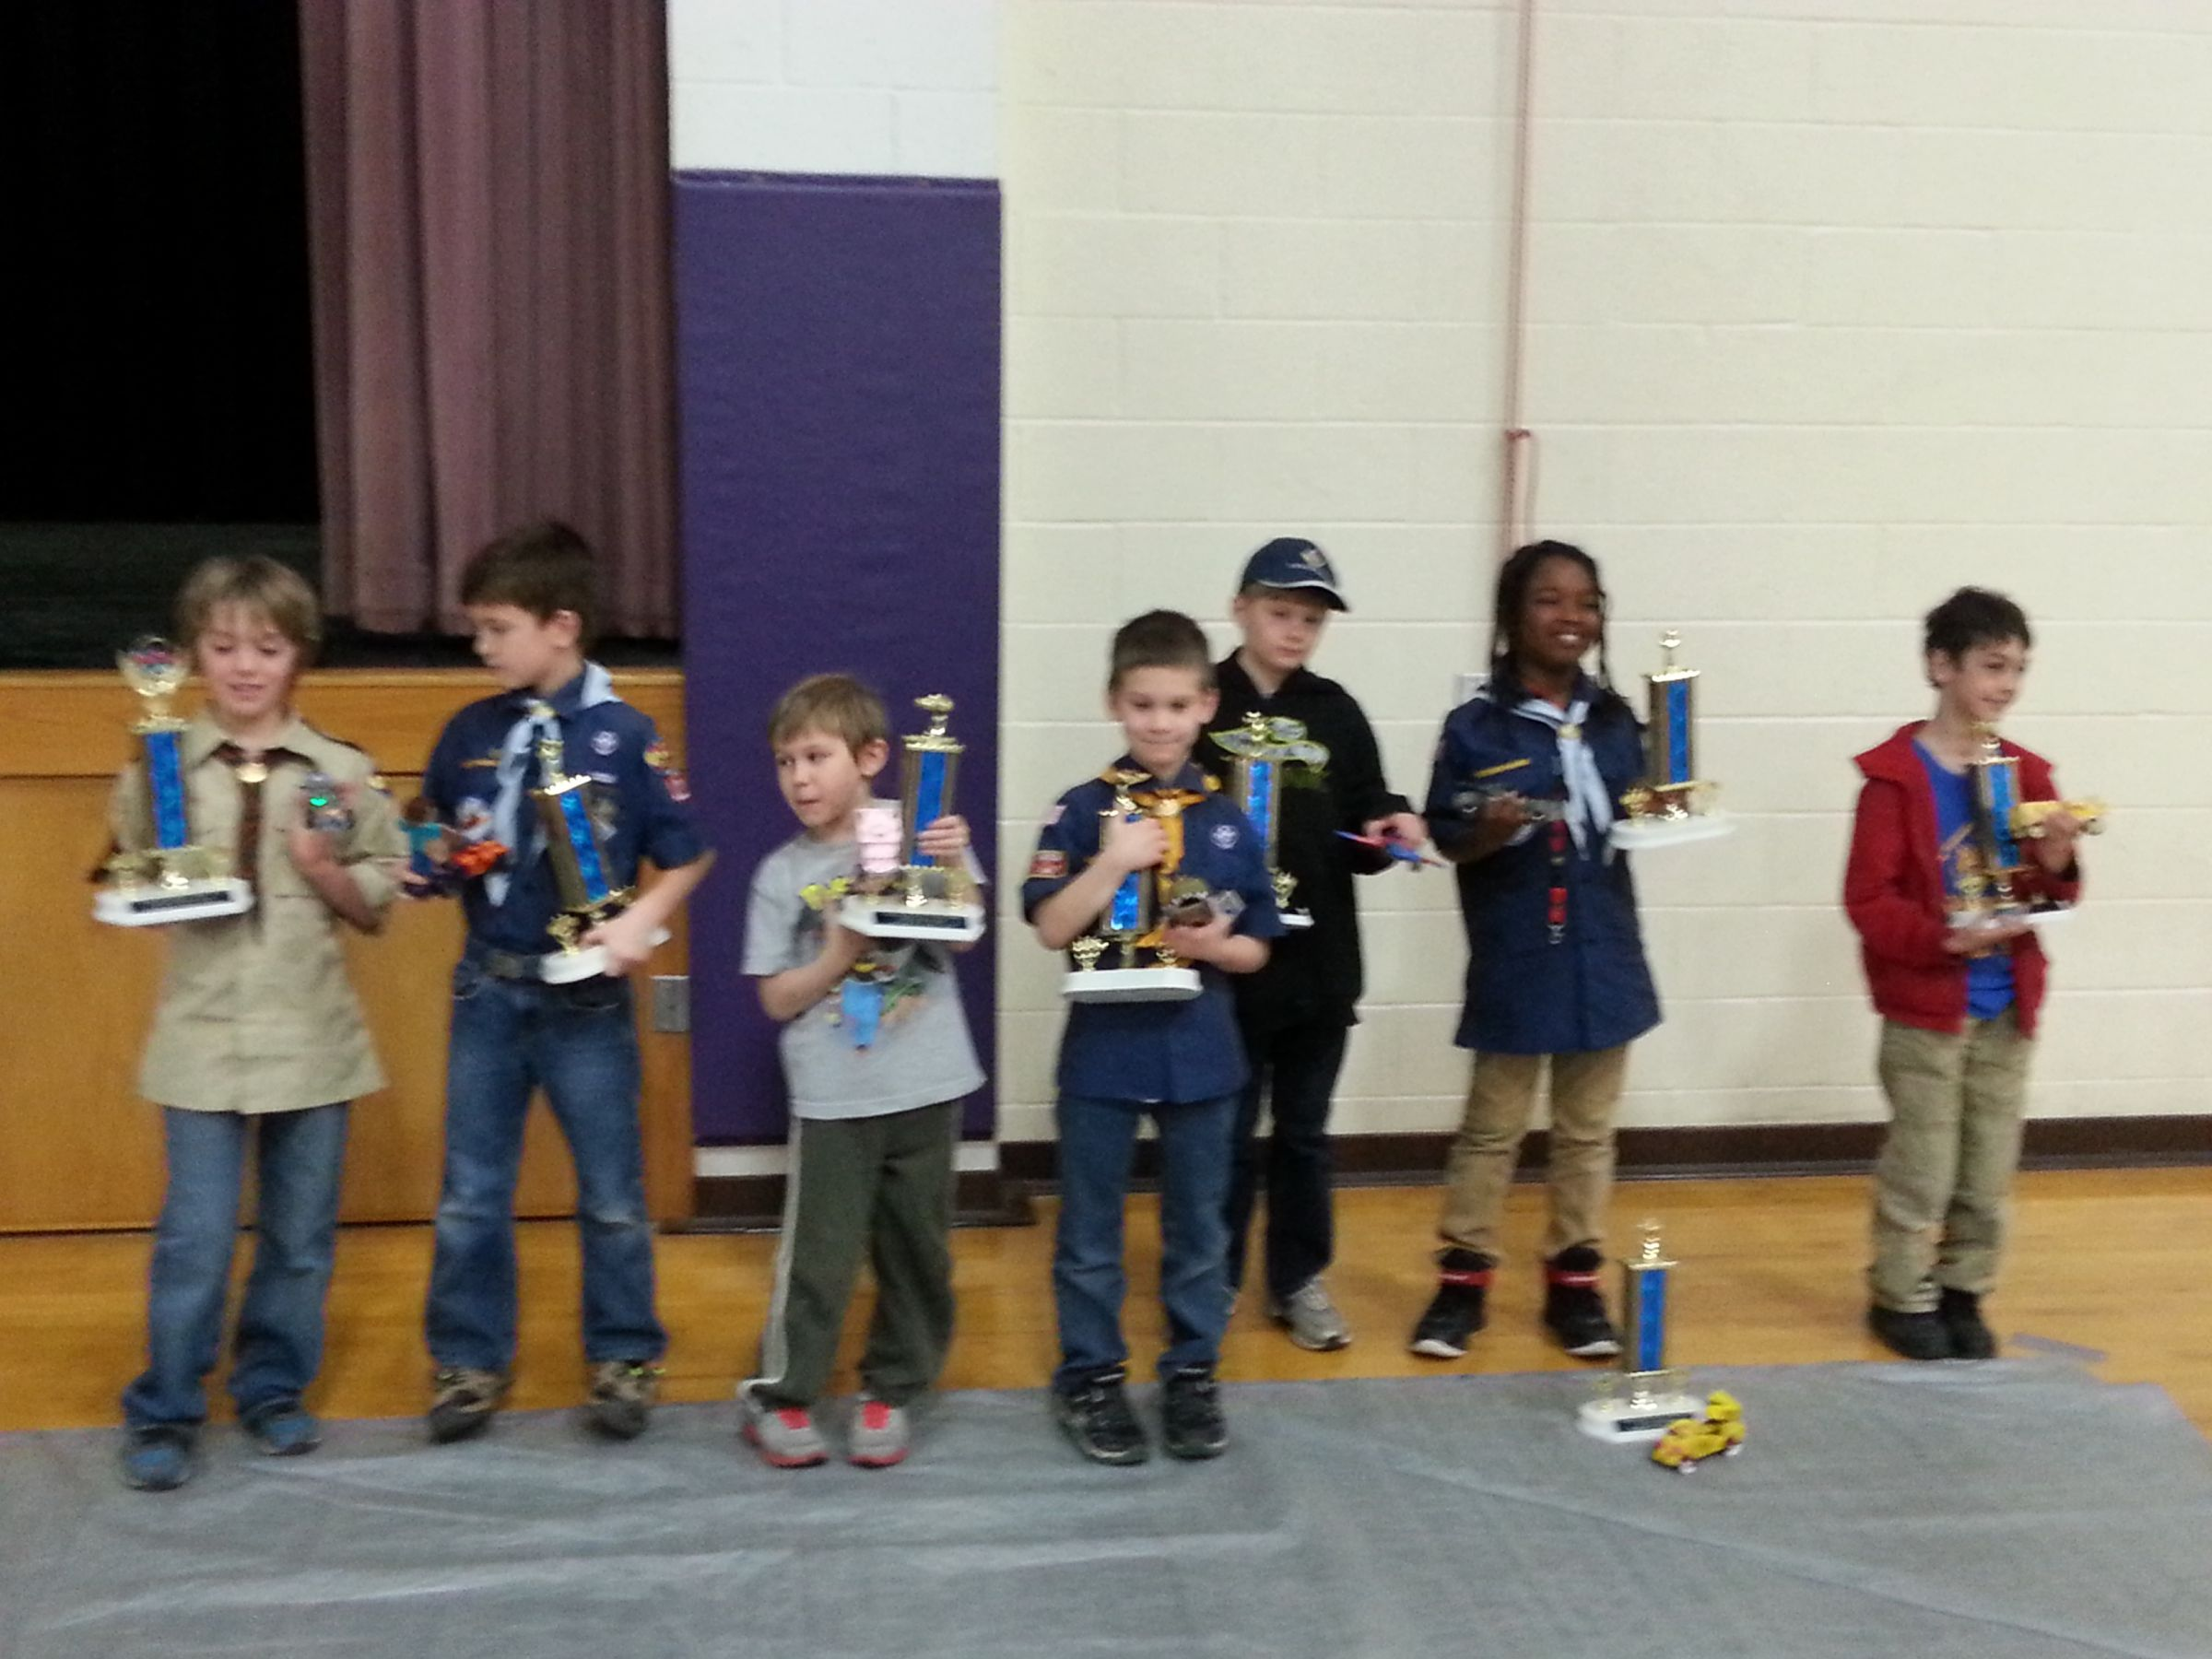 Prairielands Council Pinewood Derby show winners